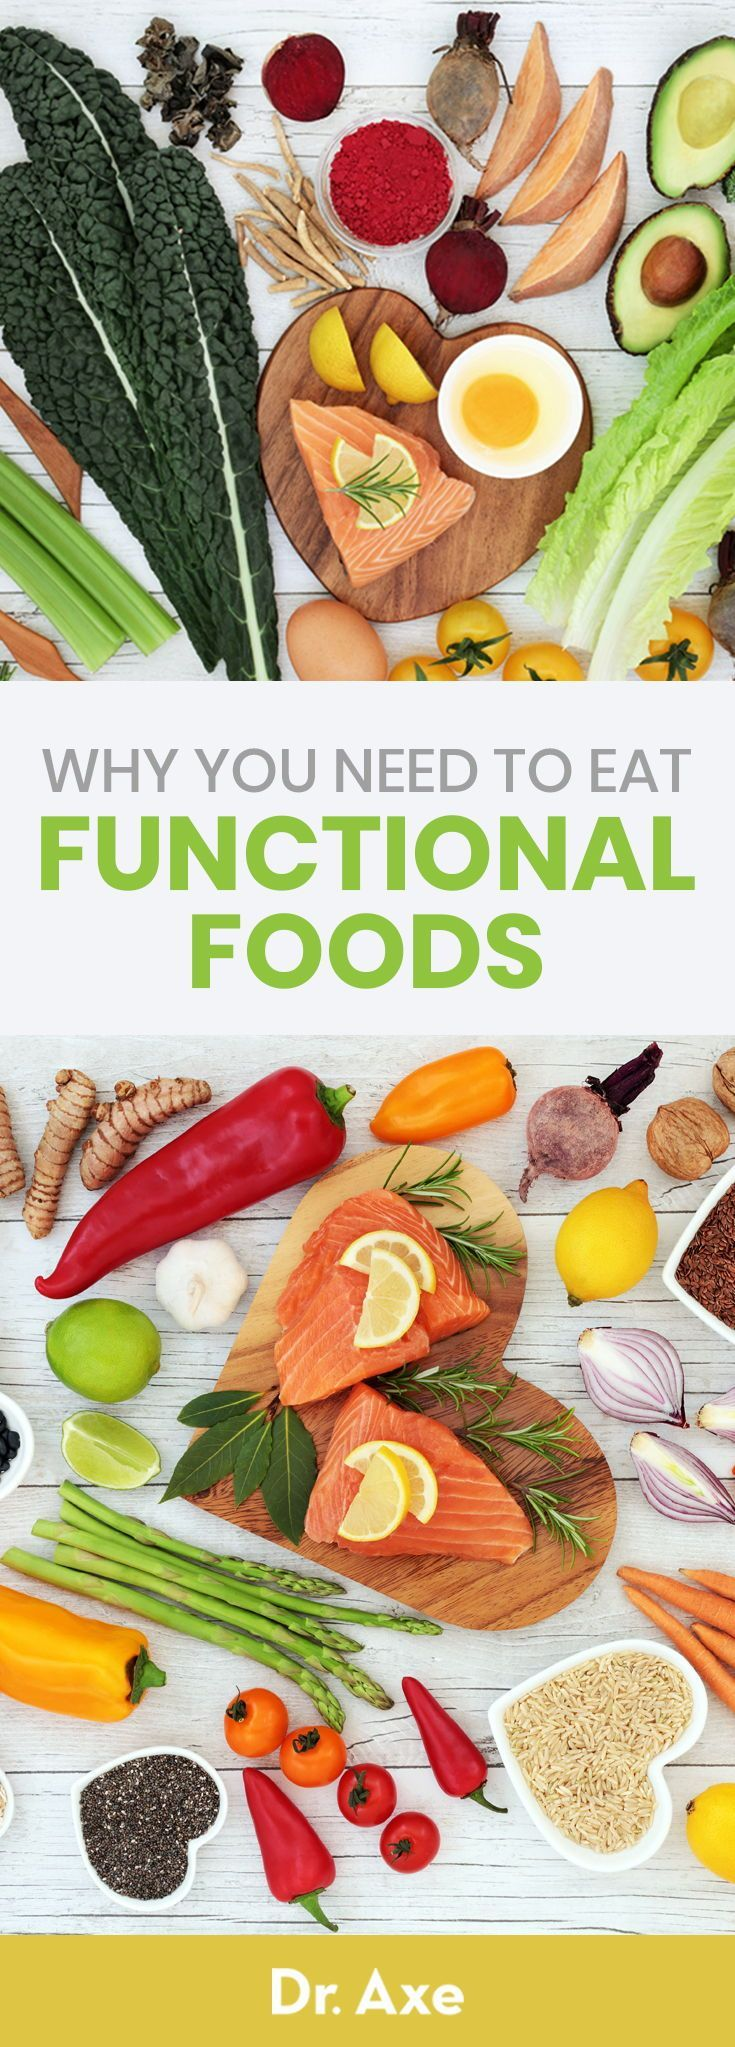 What Are Functional Foods? in 2020 Nutrition, Food